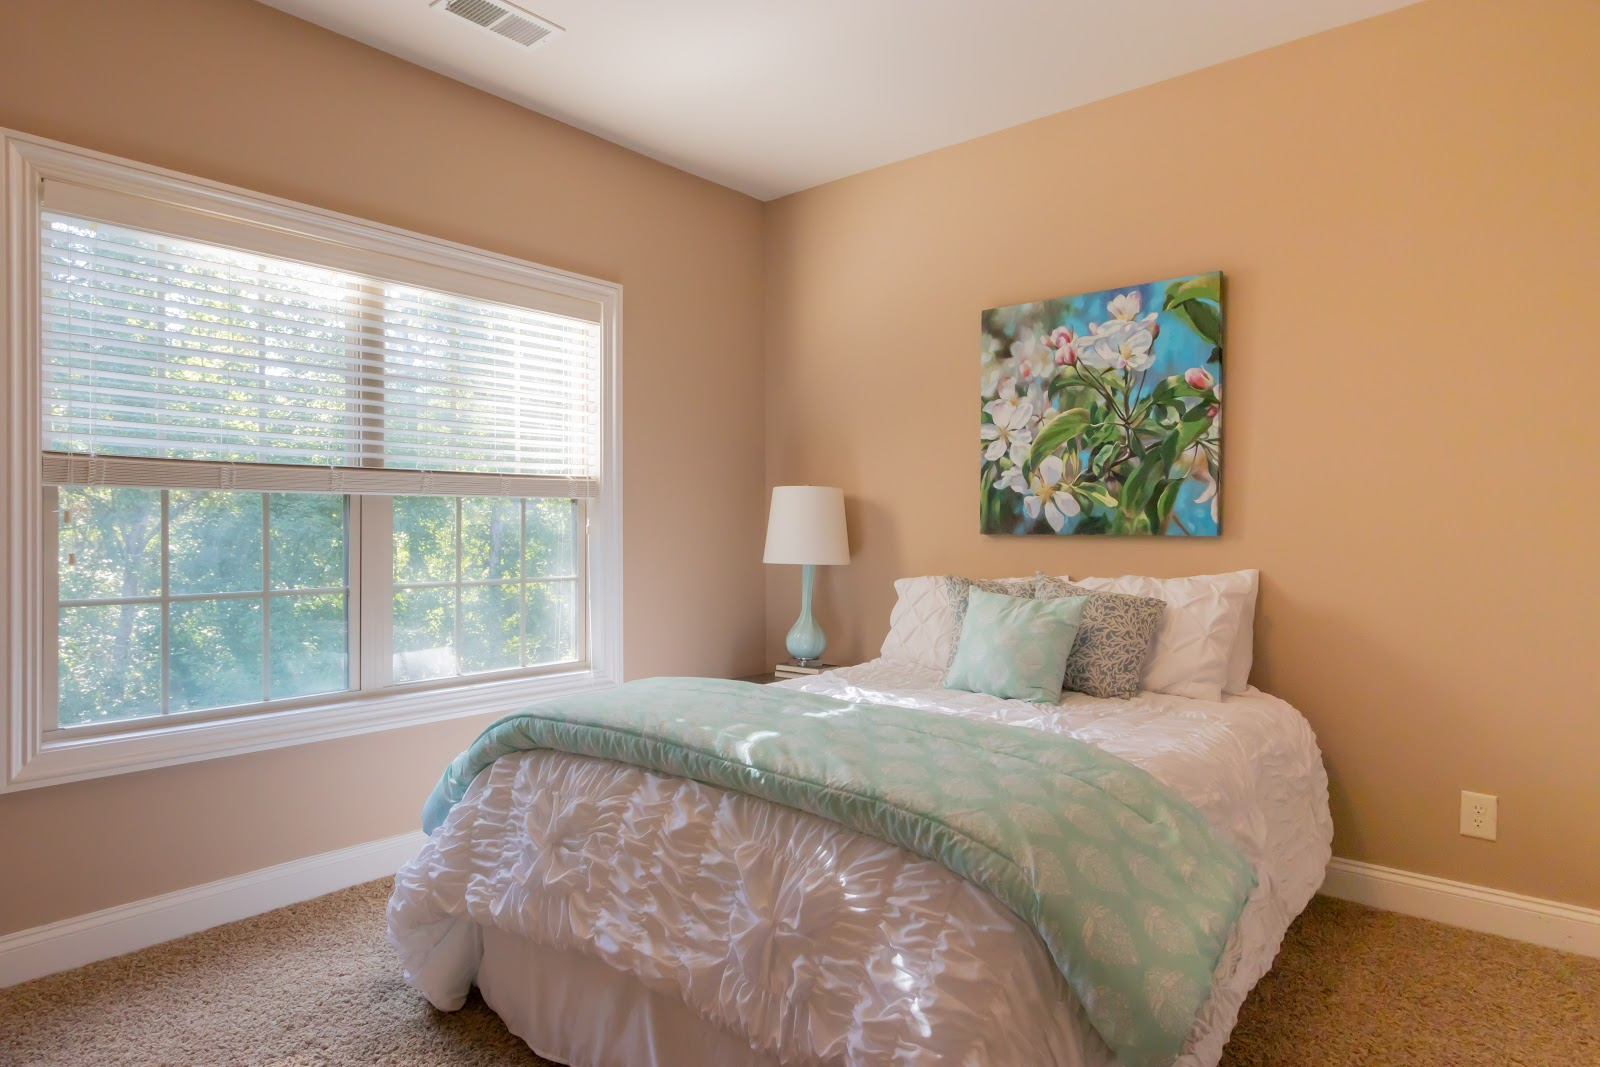 When staging a bedroom be sure to use light bedding in a neutral color and plenty of space to walk around the room.